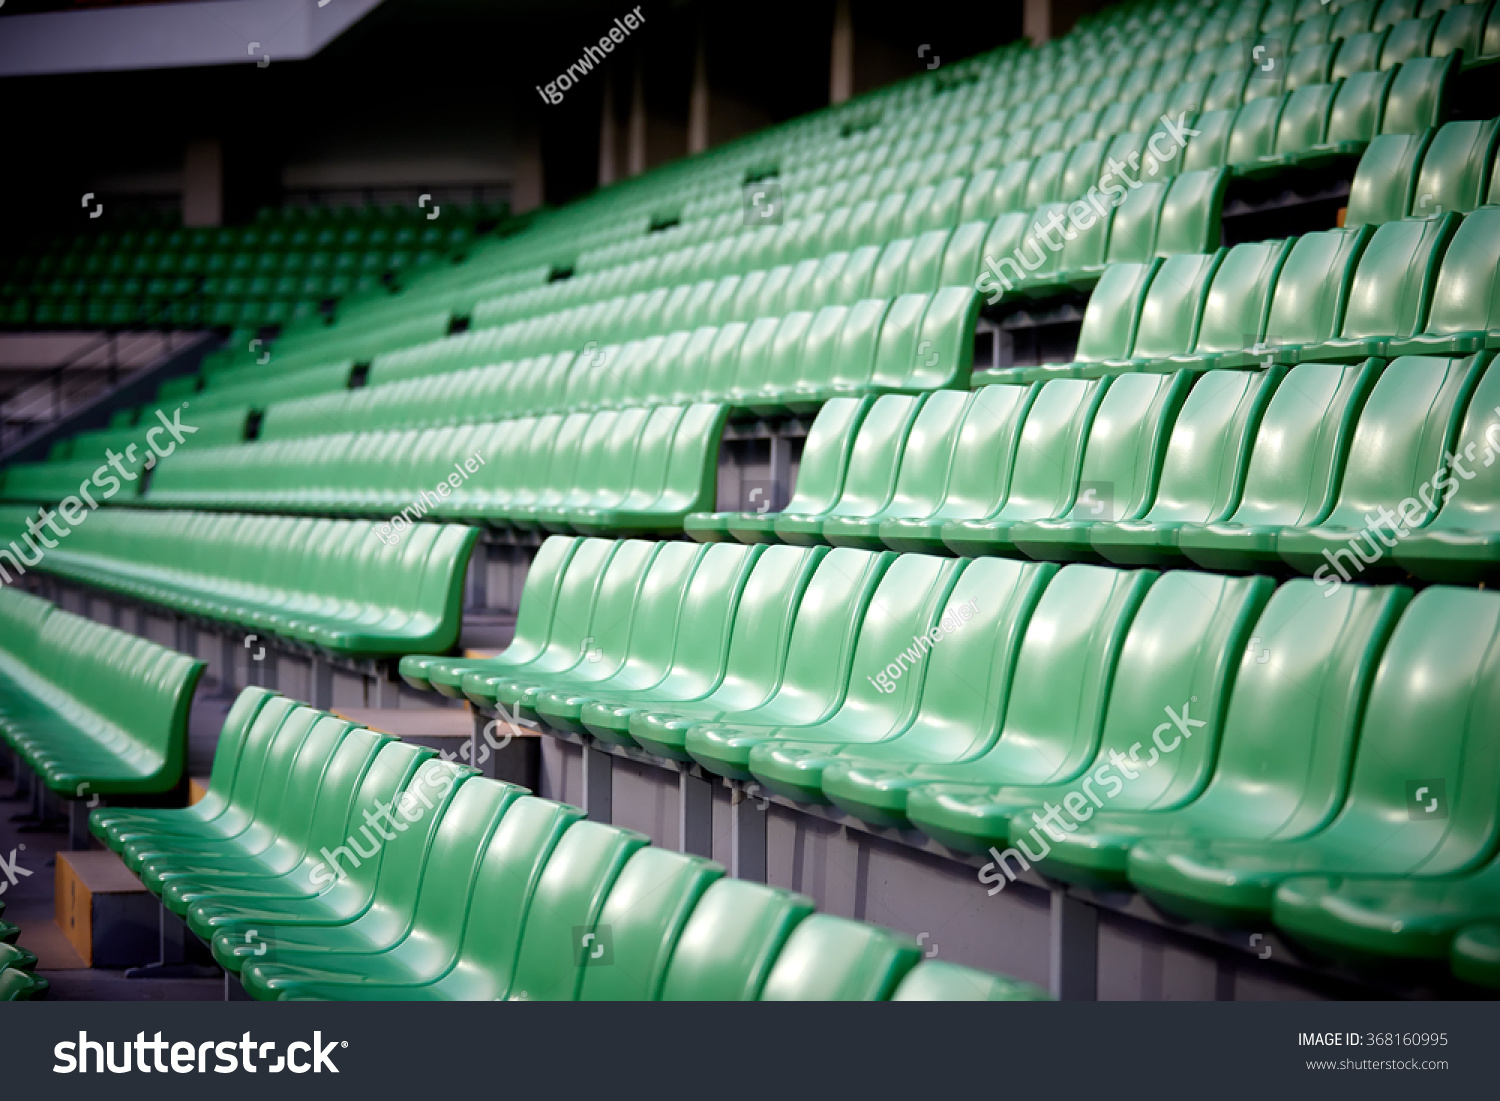 preferred chairs seats arena chair seating stadium